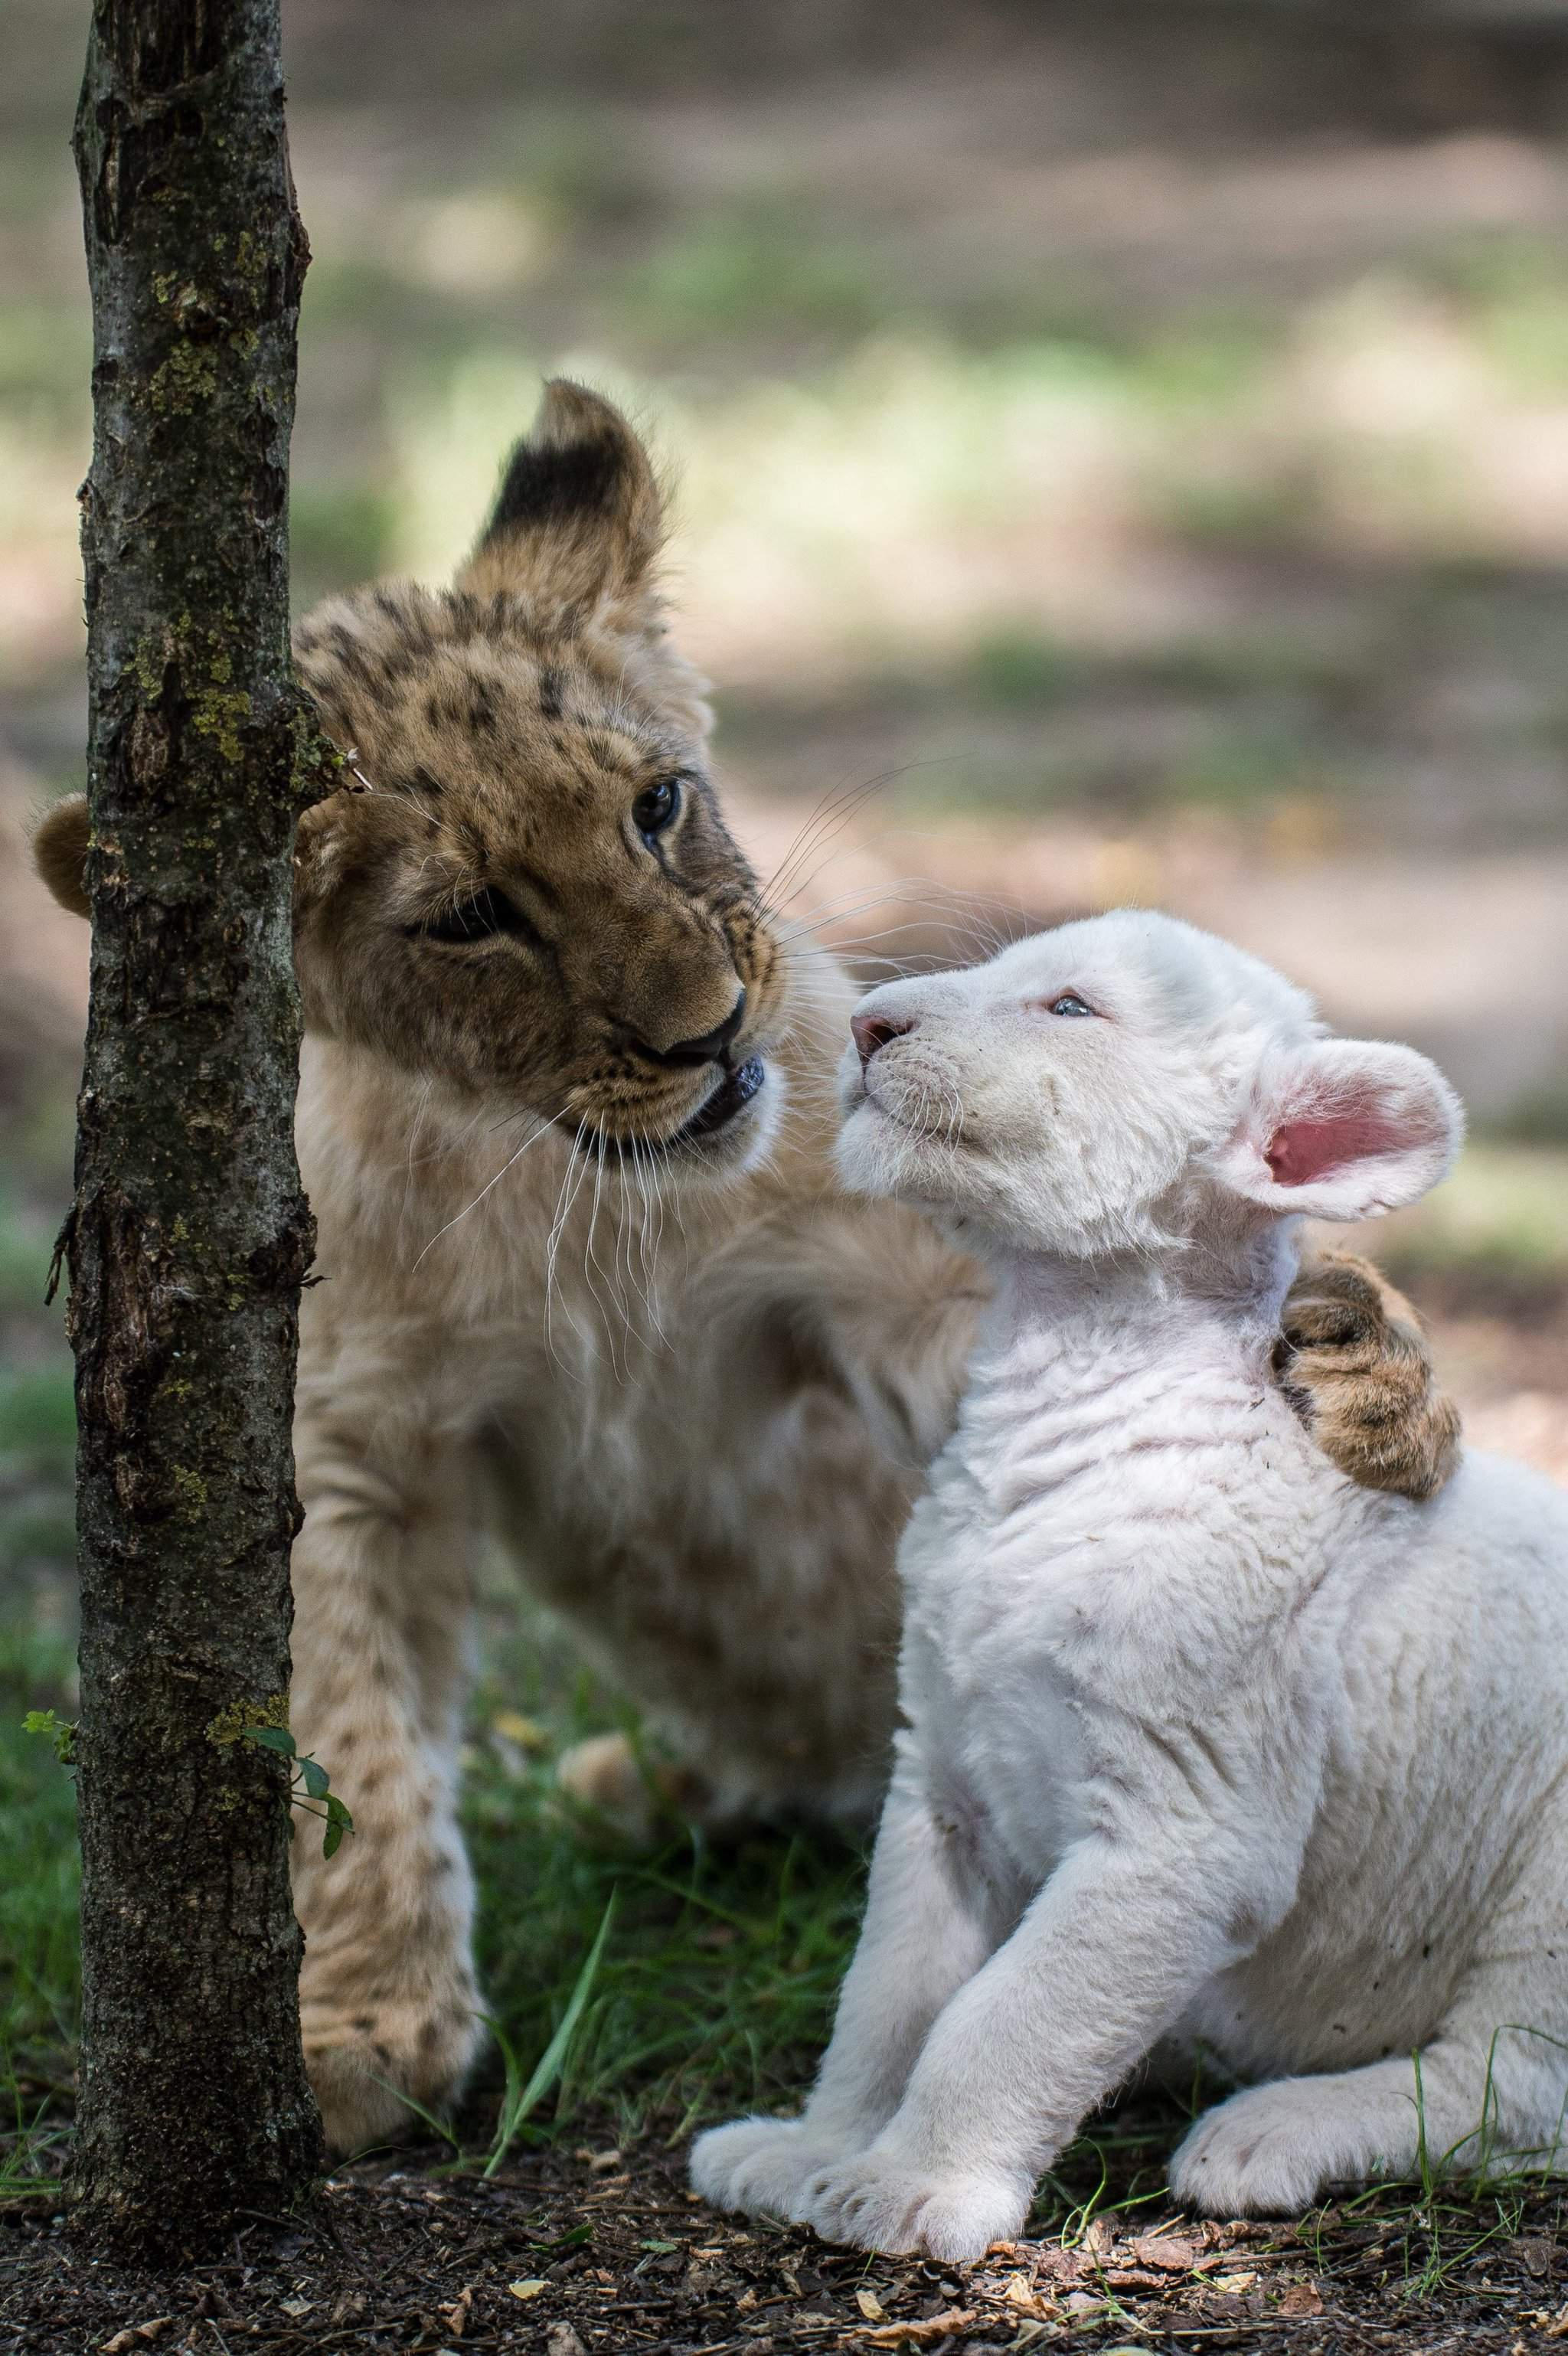 Photos – A white and a brown lion cub growing up together in Hungary